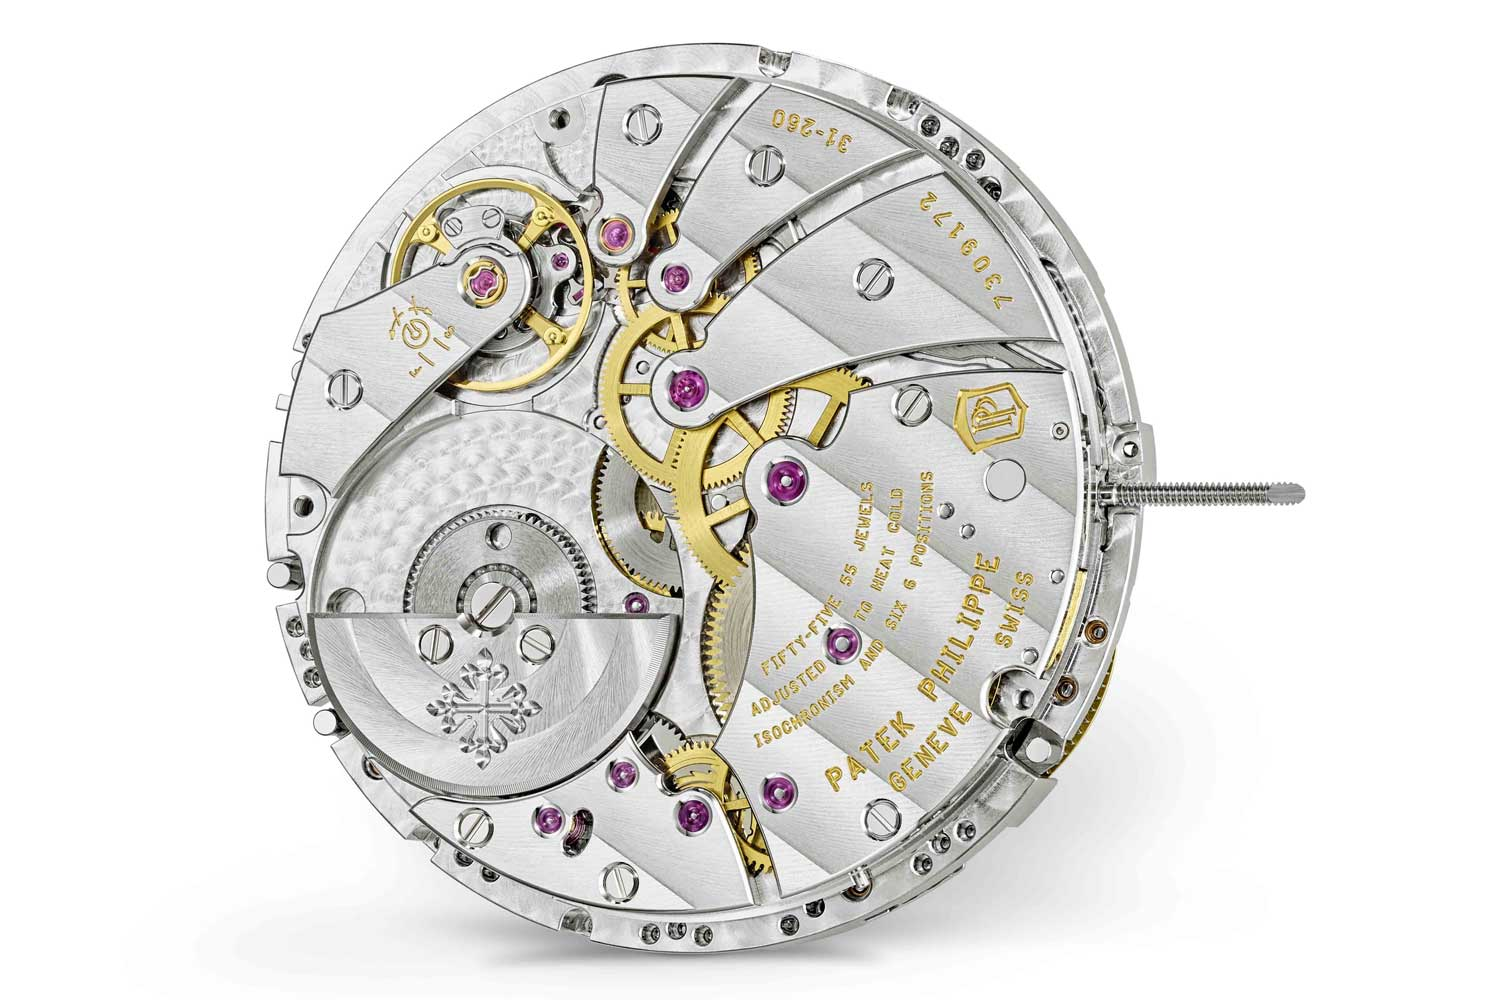 The caliber 31-260 PS QL with a recessed mini rotor and a customized module is a brand new movement for which three patent applications were filed